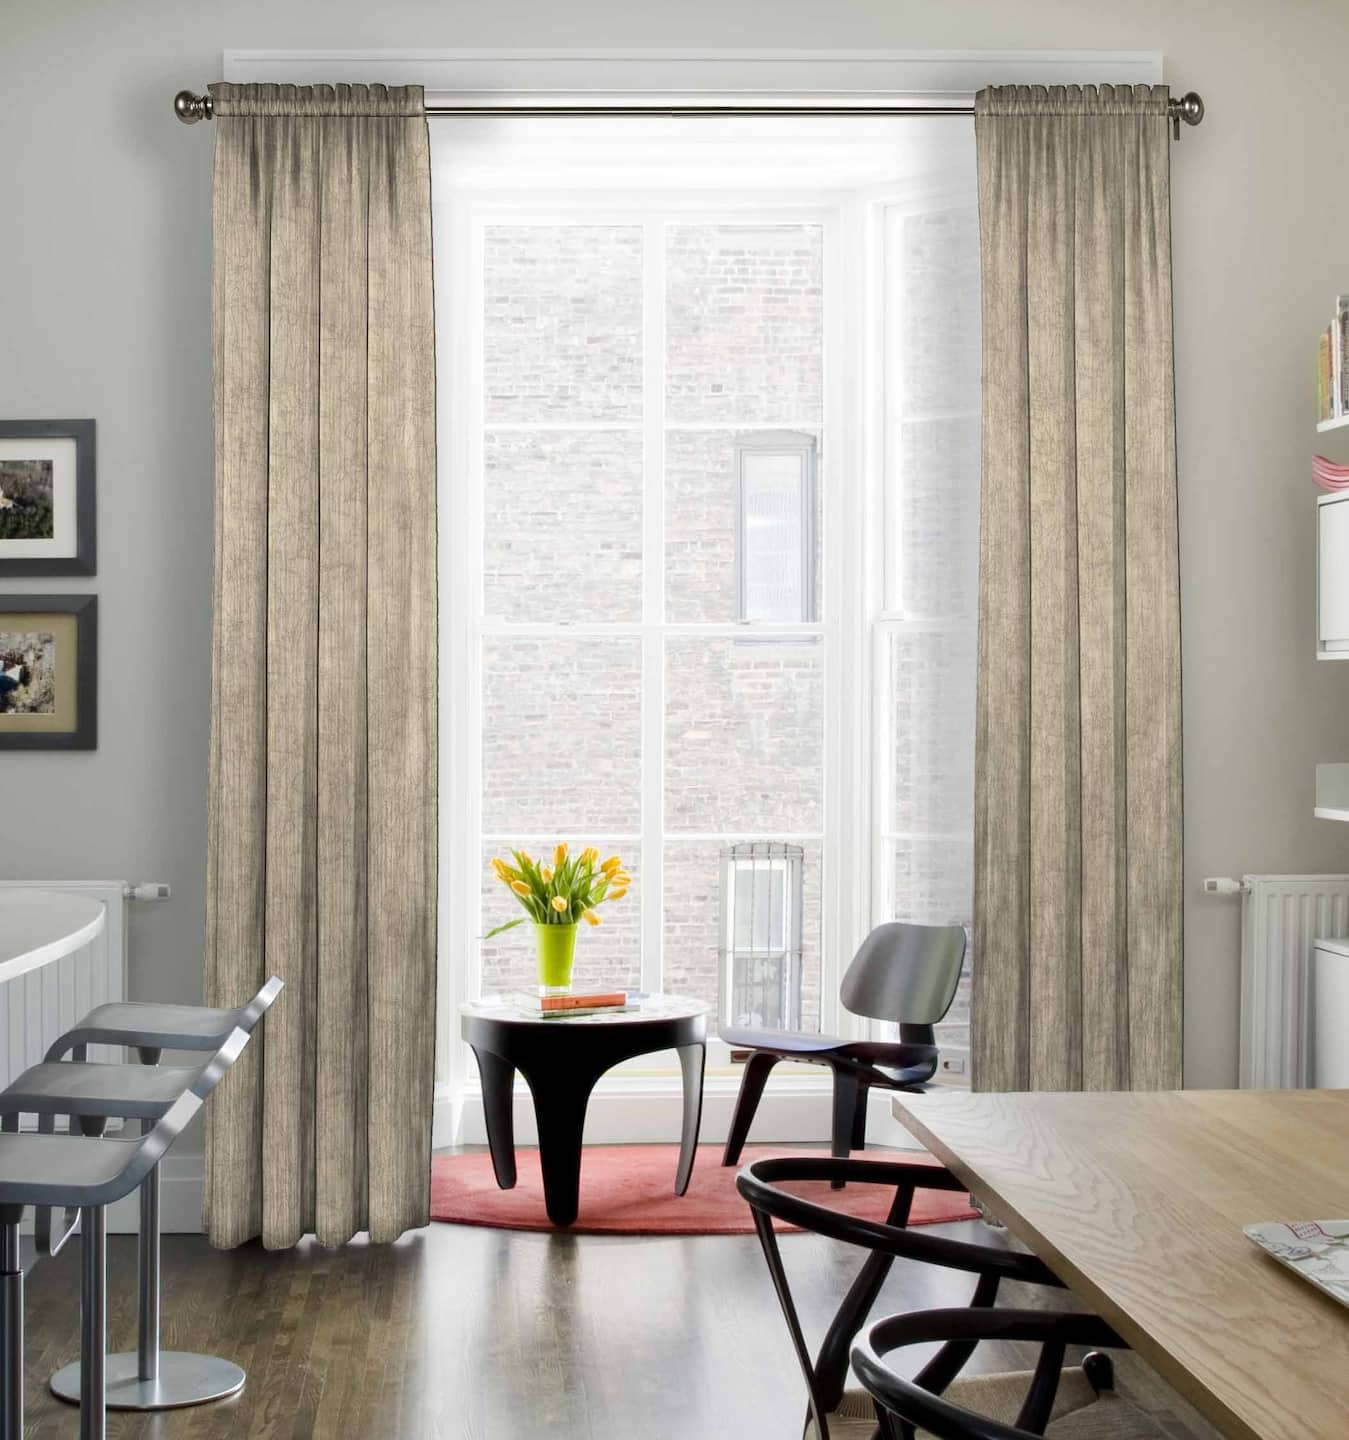 Dining Room Window: Dining Room Curtain Ideas